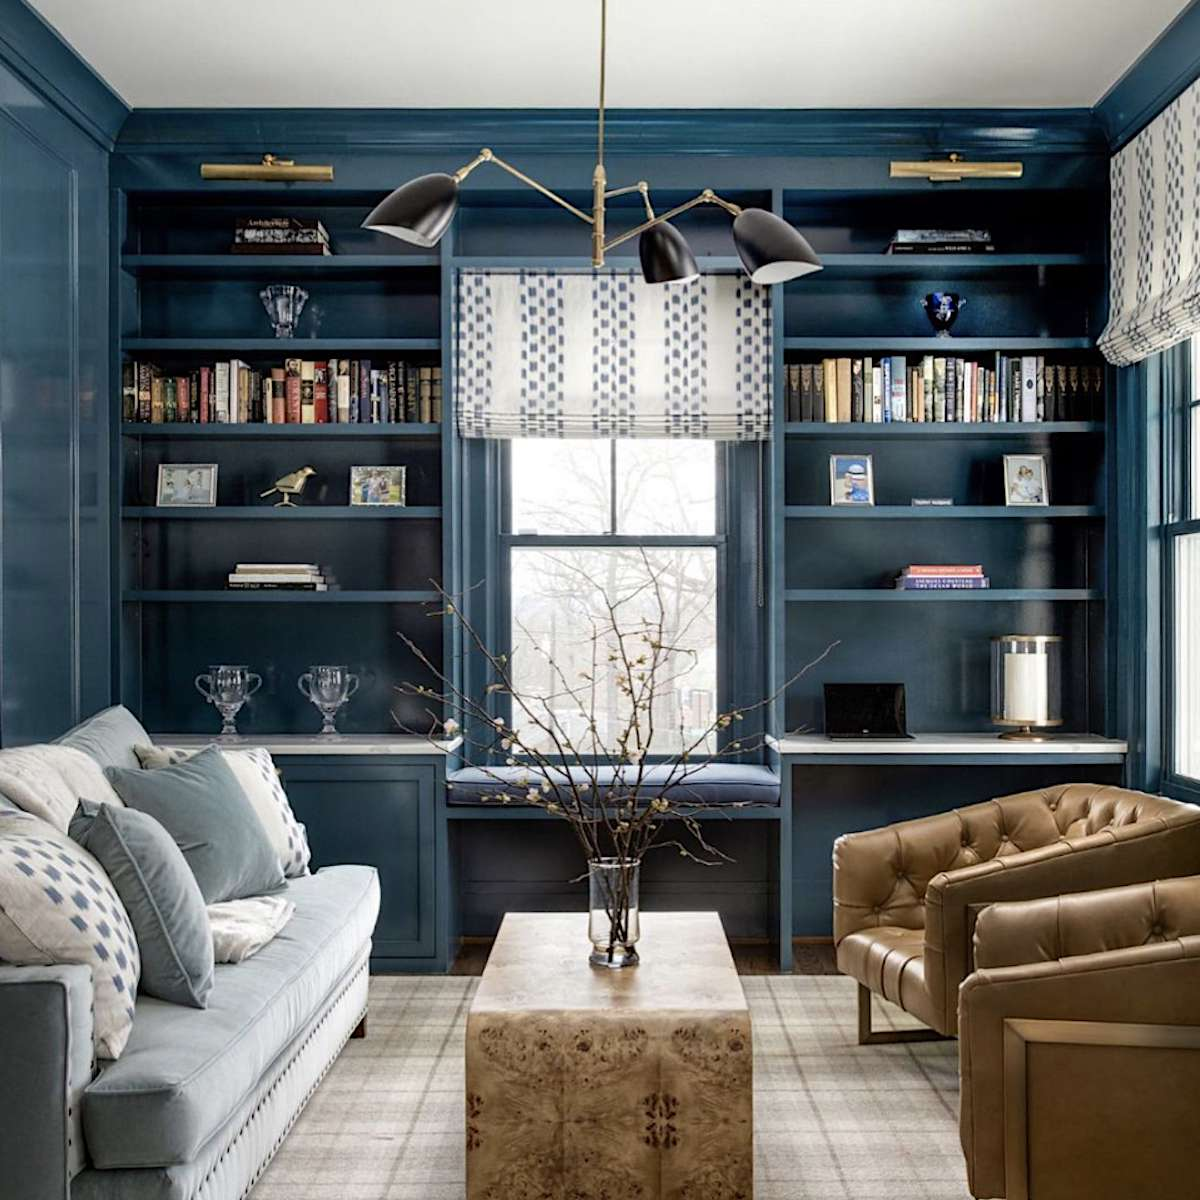 ocean blue symmetrical bookcases with brown leather seating